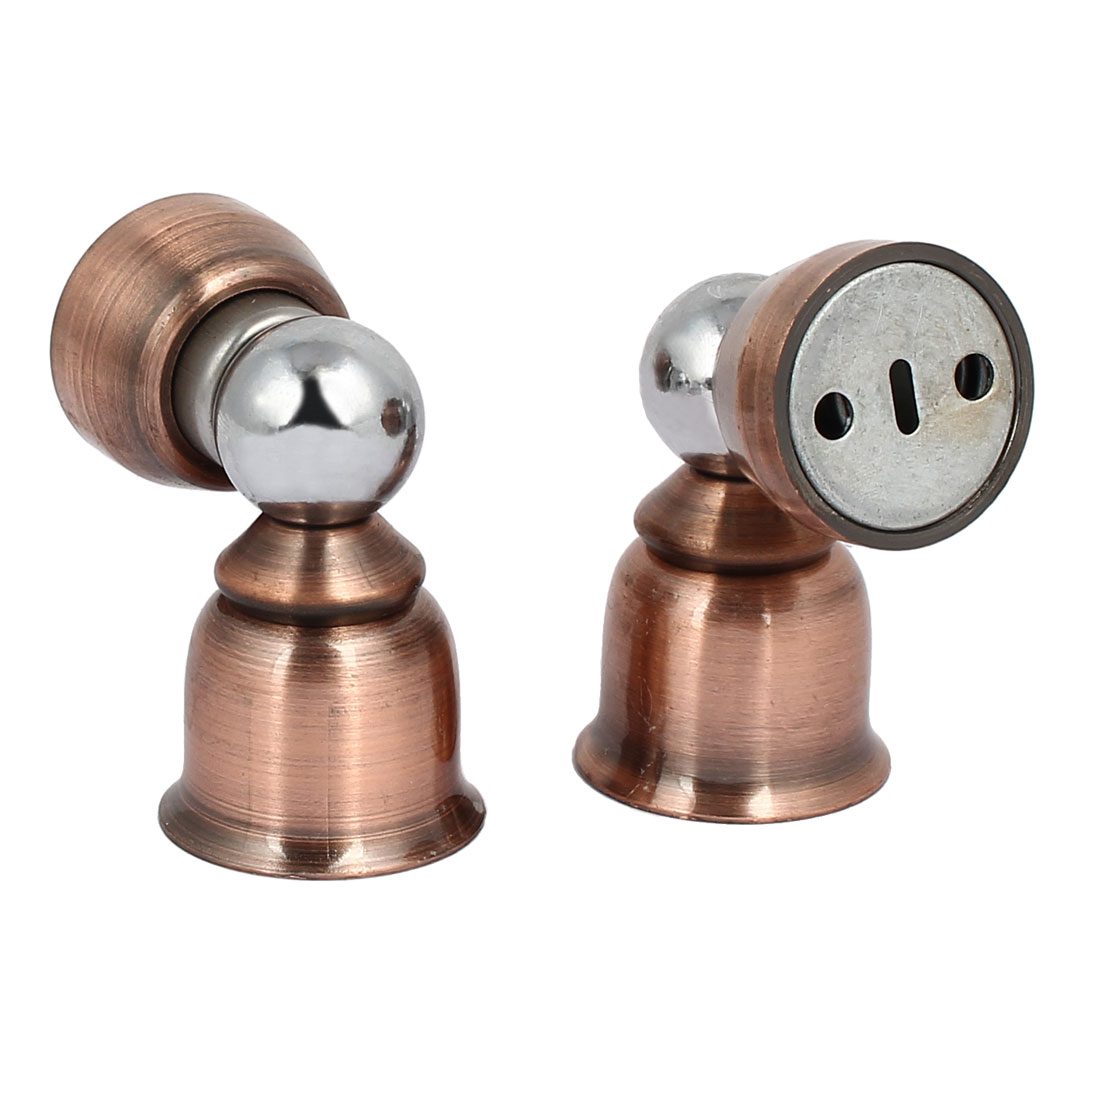 Home Office Metal Door Stopper Magnetic Catches Copper Tone 36mmx57mm 2pcs